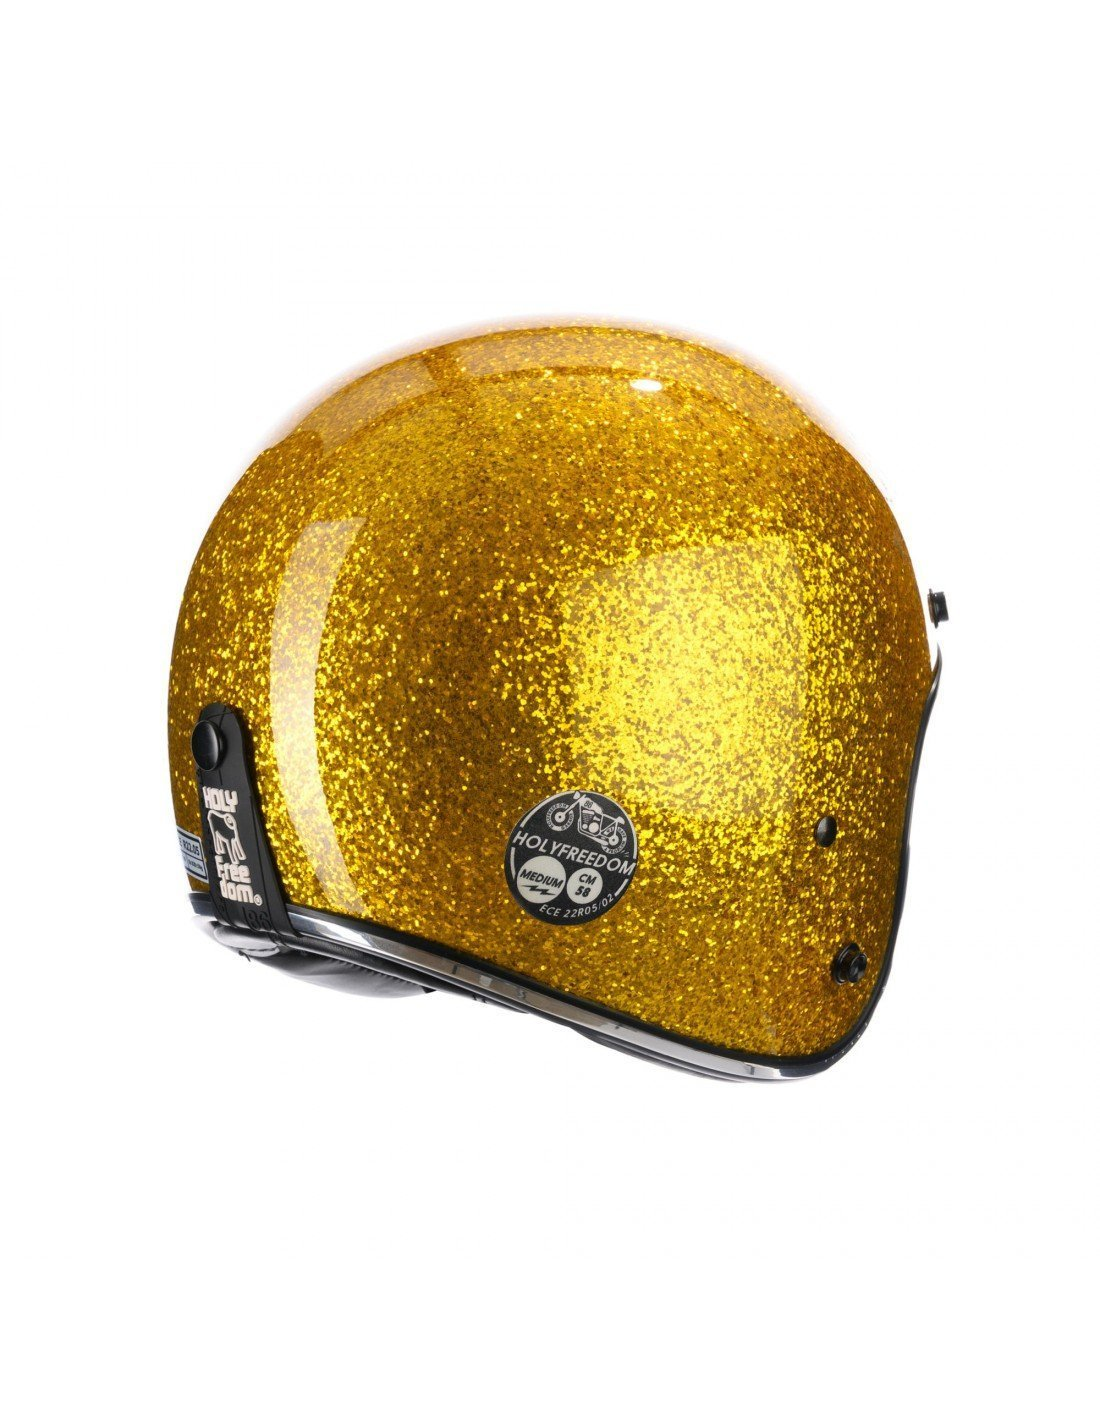 Holy Freedom - Holy Freedom Golden Glitter Open Face Jet Helmet ECE Certified - Helmets - Salt Flats Clothing